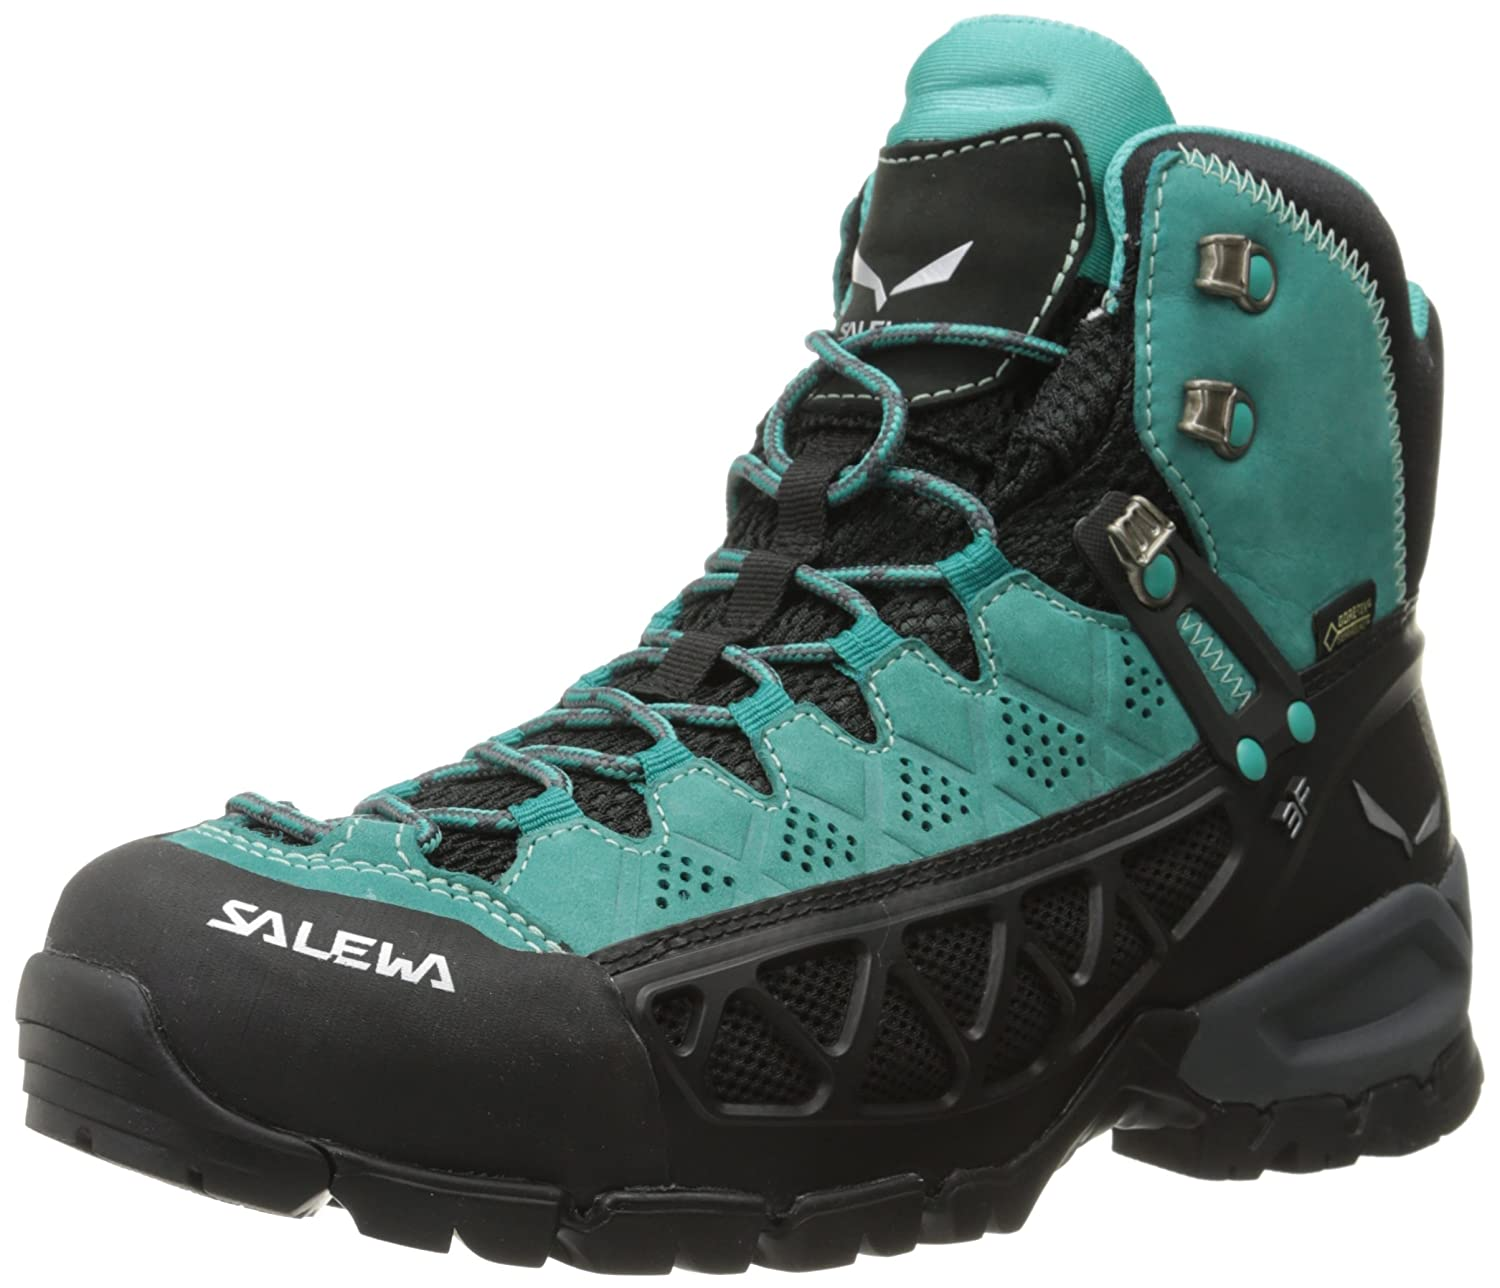 Salewa Women's WS ALP Flow Mid GTX Hiking Shoe B00N48MAD0 8 B(M) US|Venom/Bright Acqua